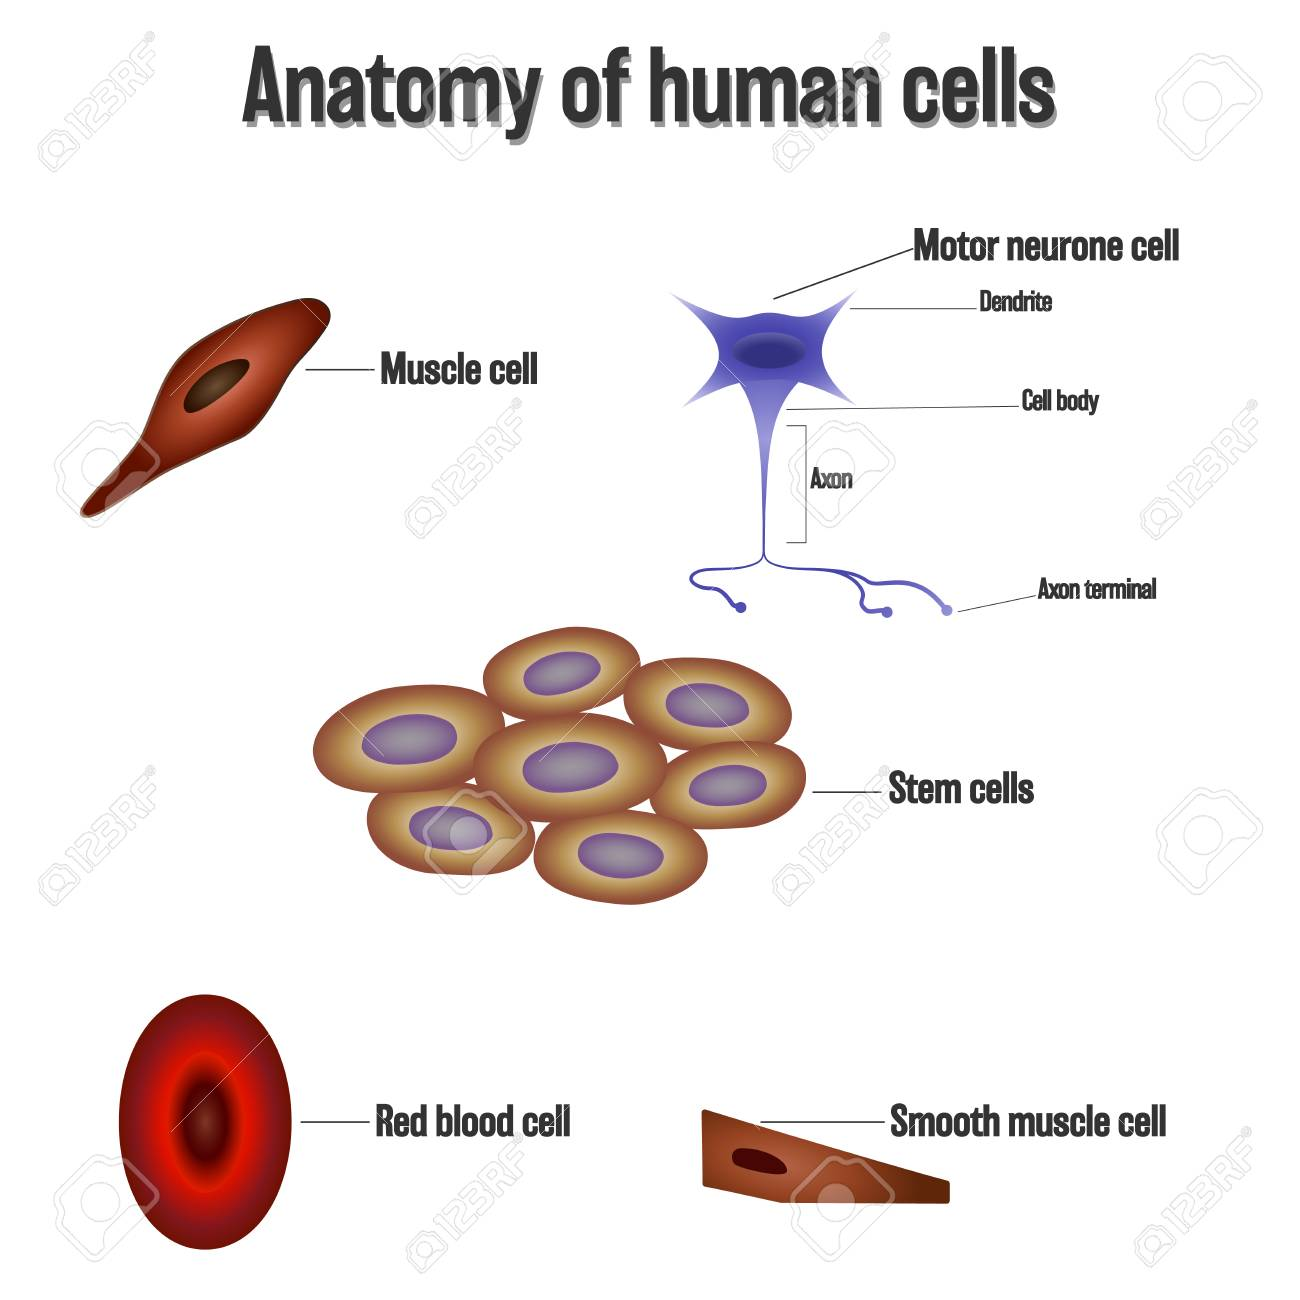 Anatomy Of Human Cells Isolated On White Background As Health